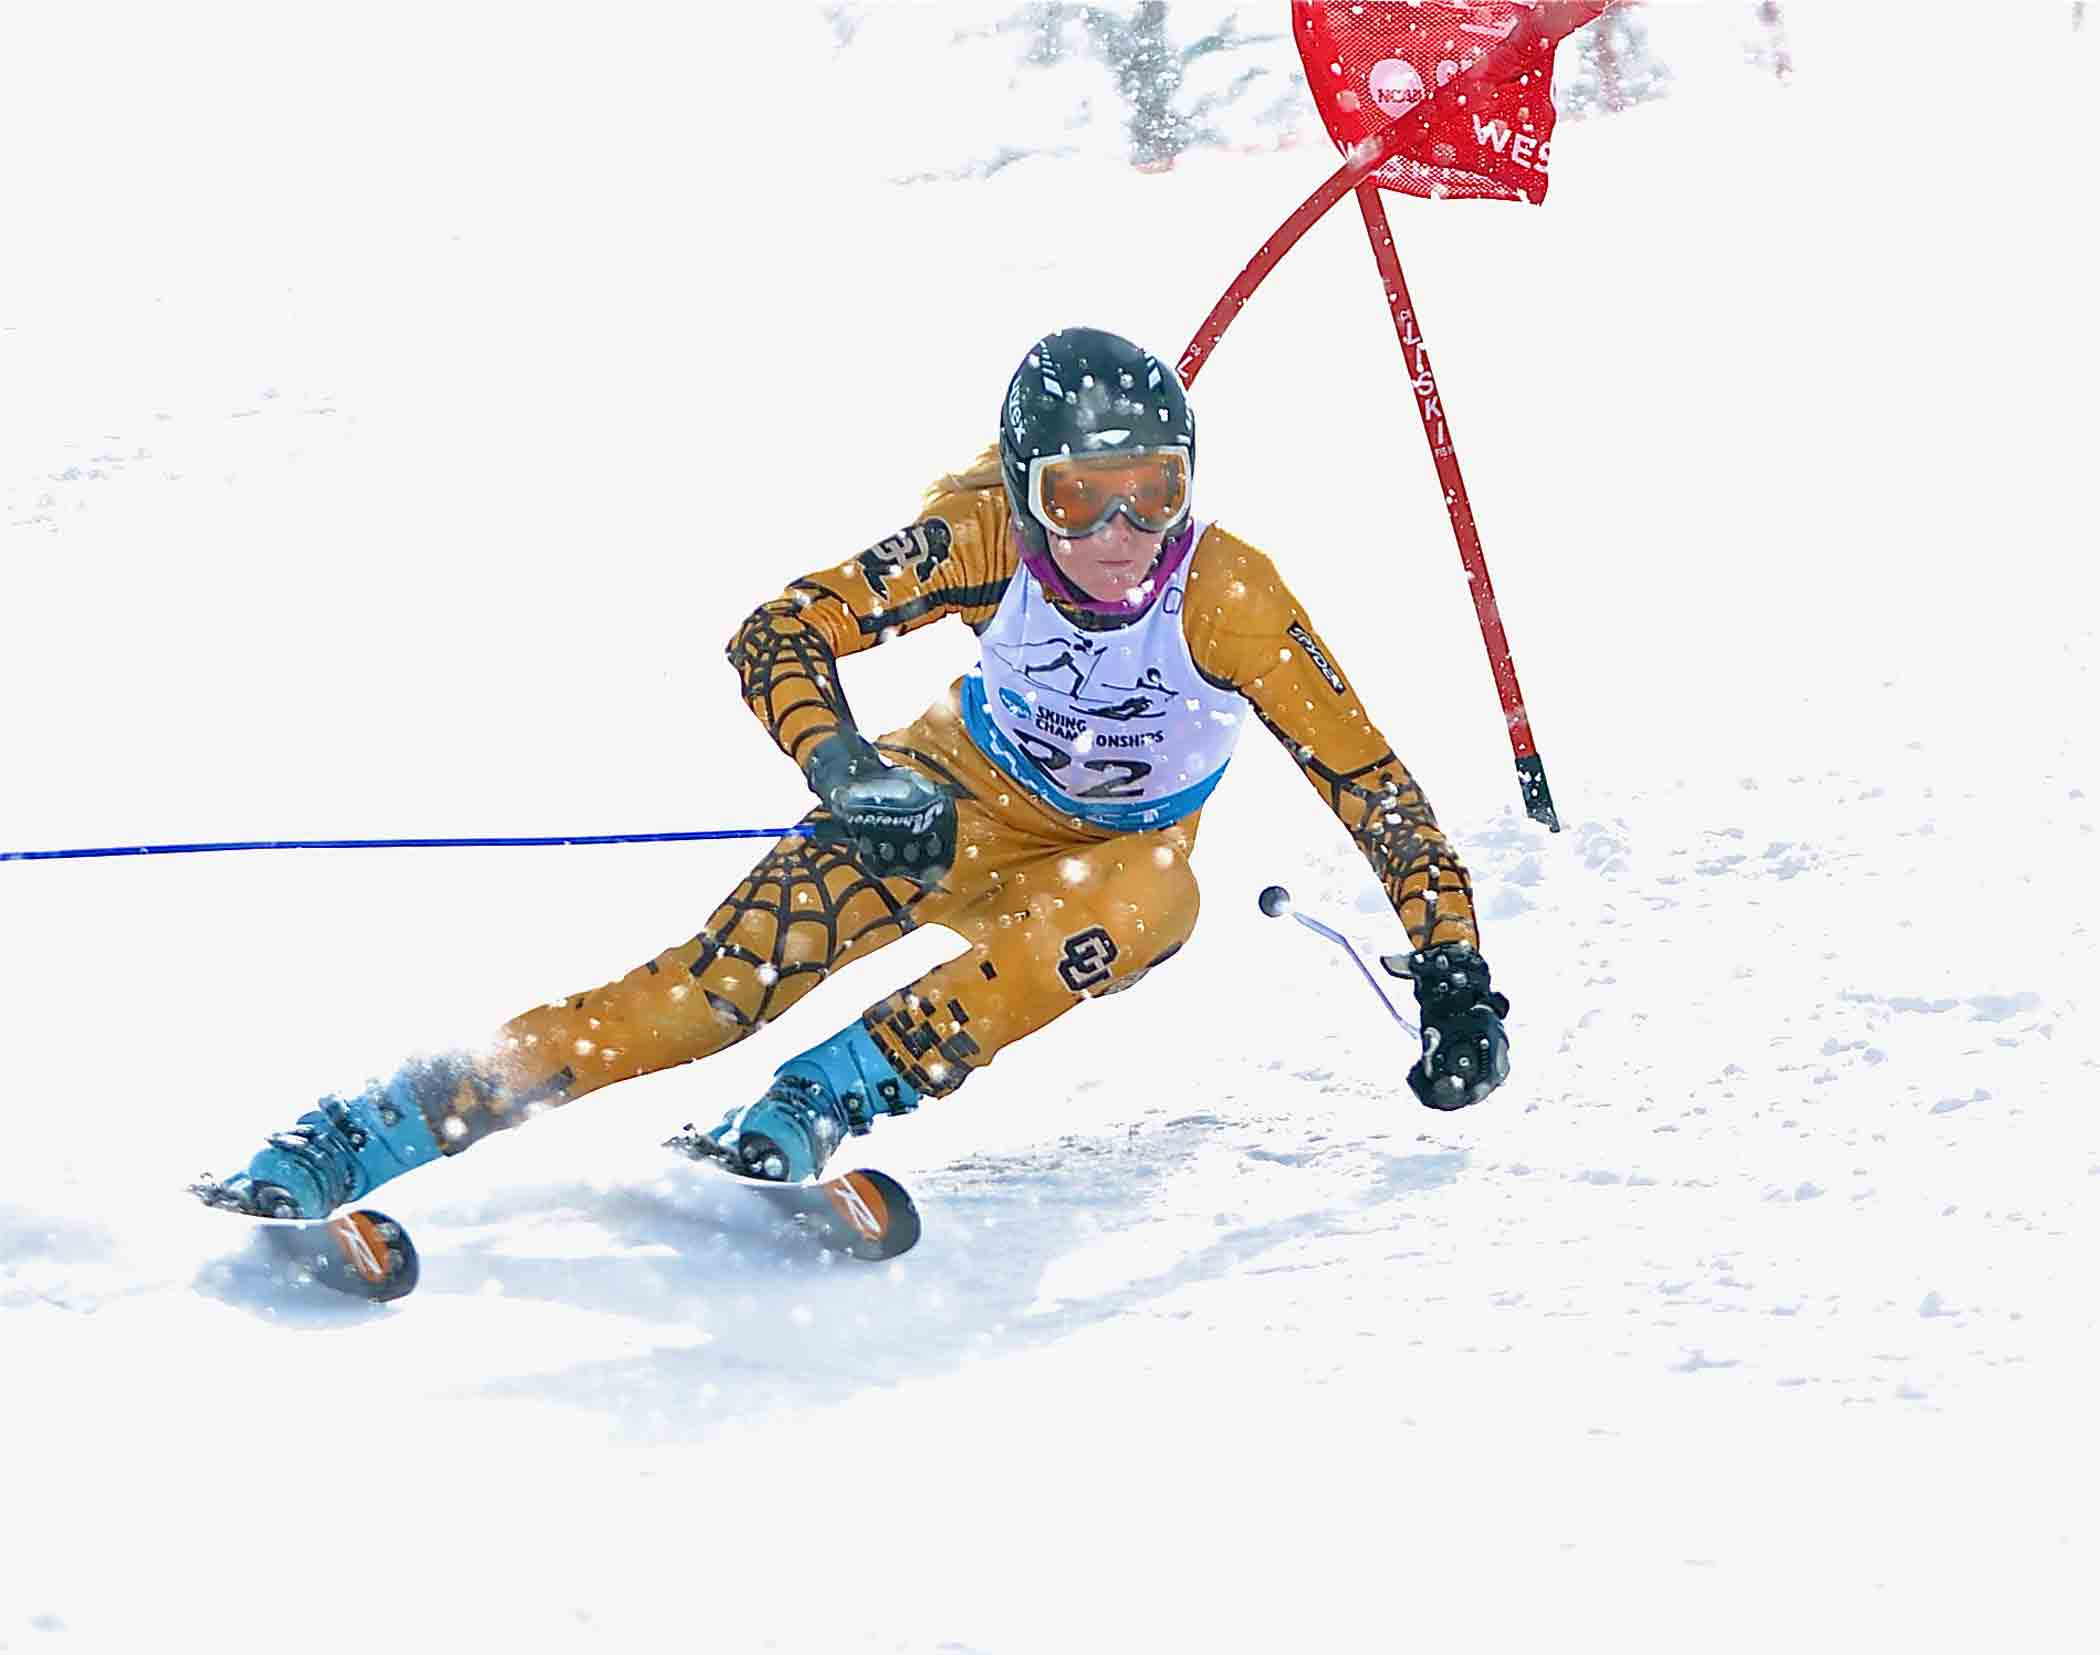 Katie Hartman, who won the World University Games super G Jan. 29, skiing for CU last season